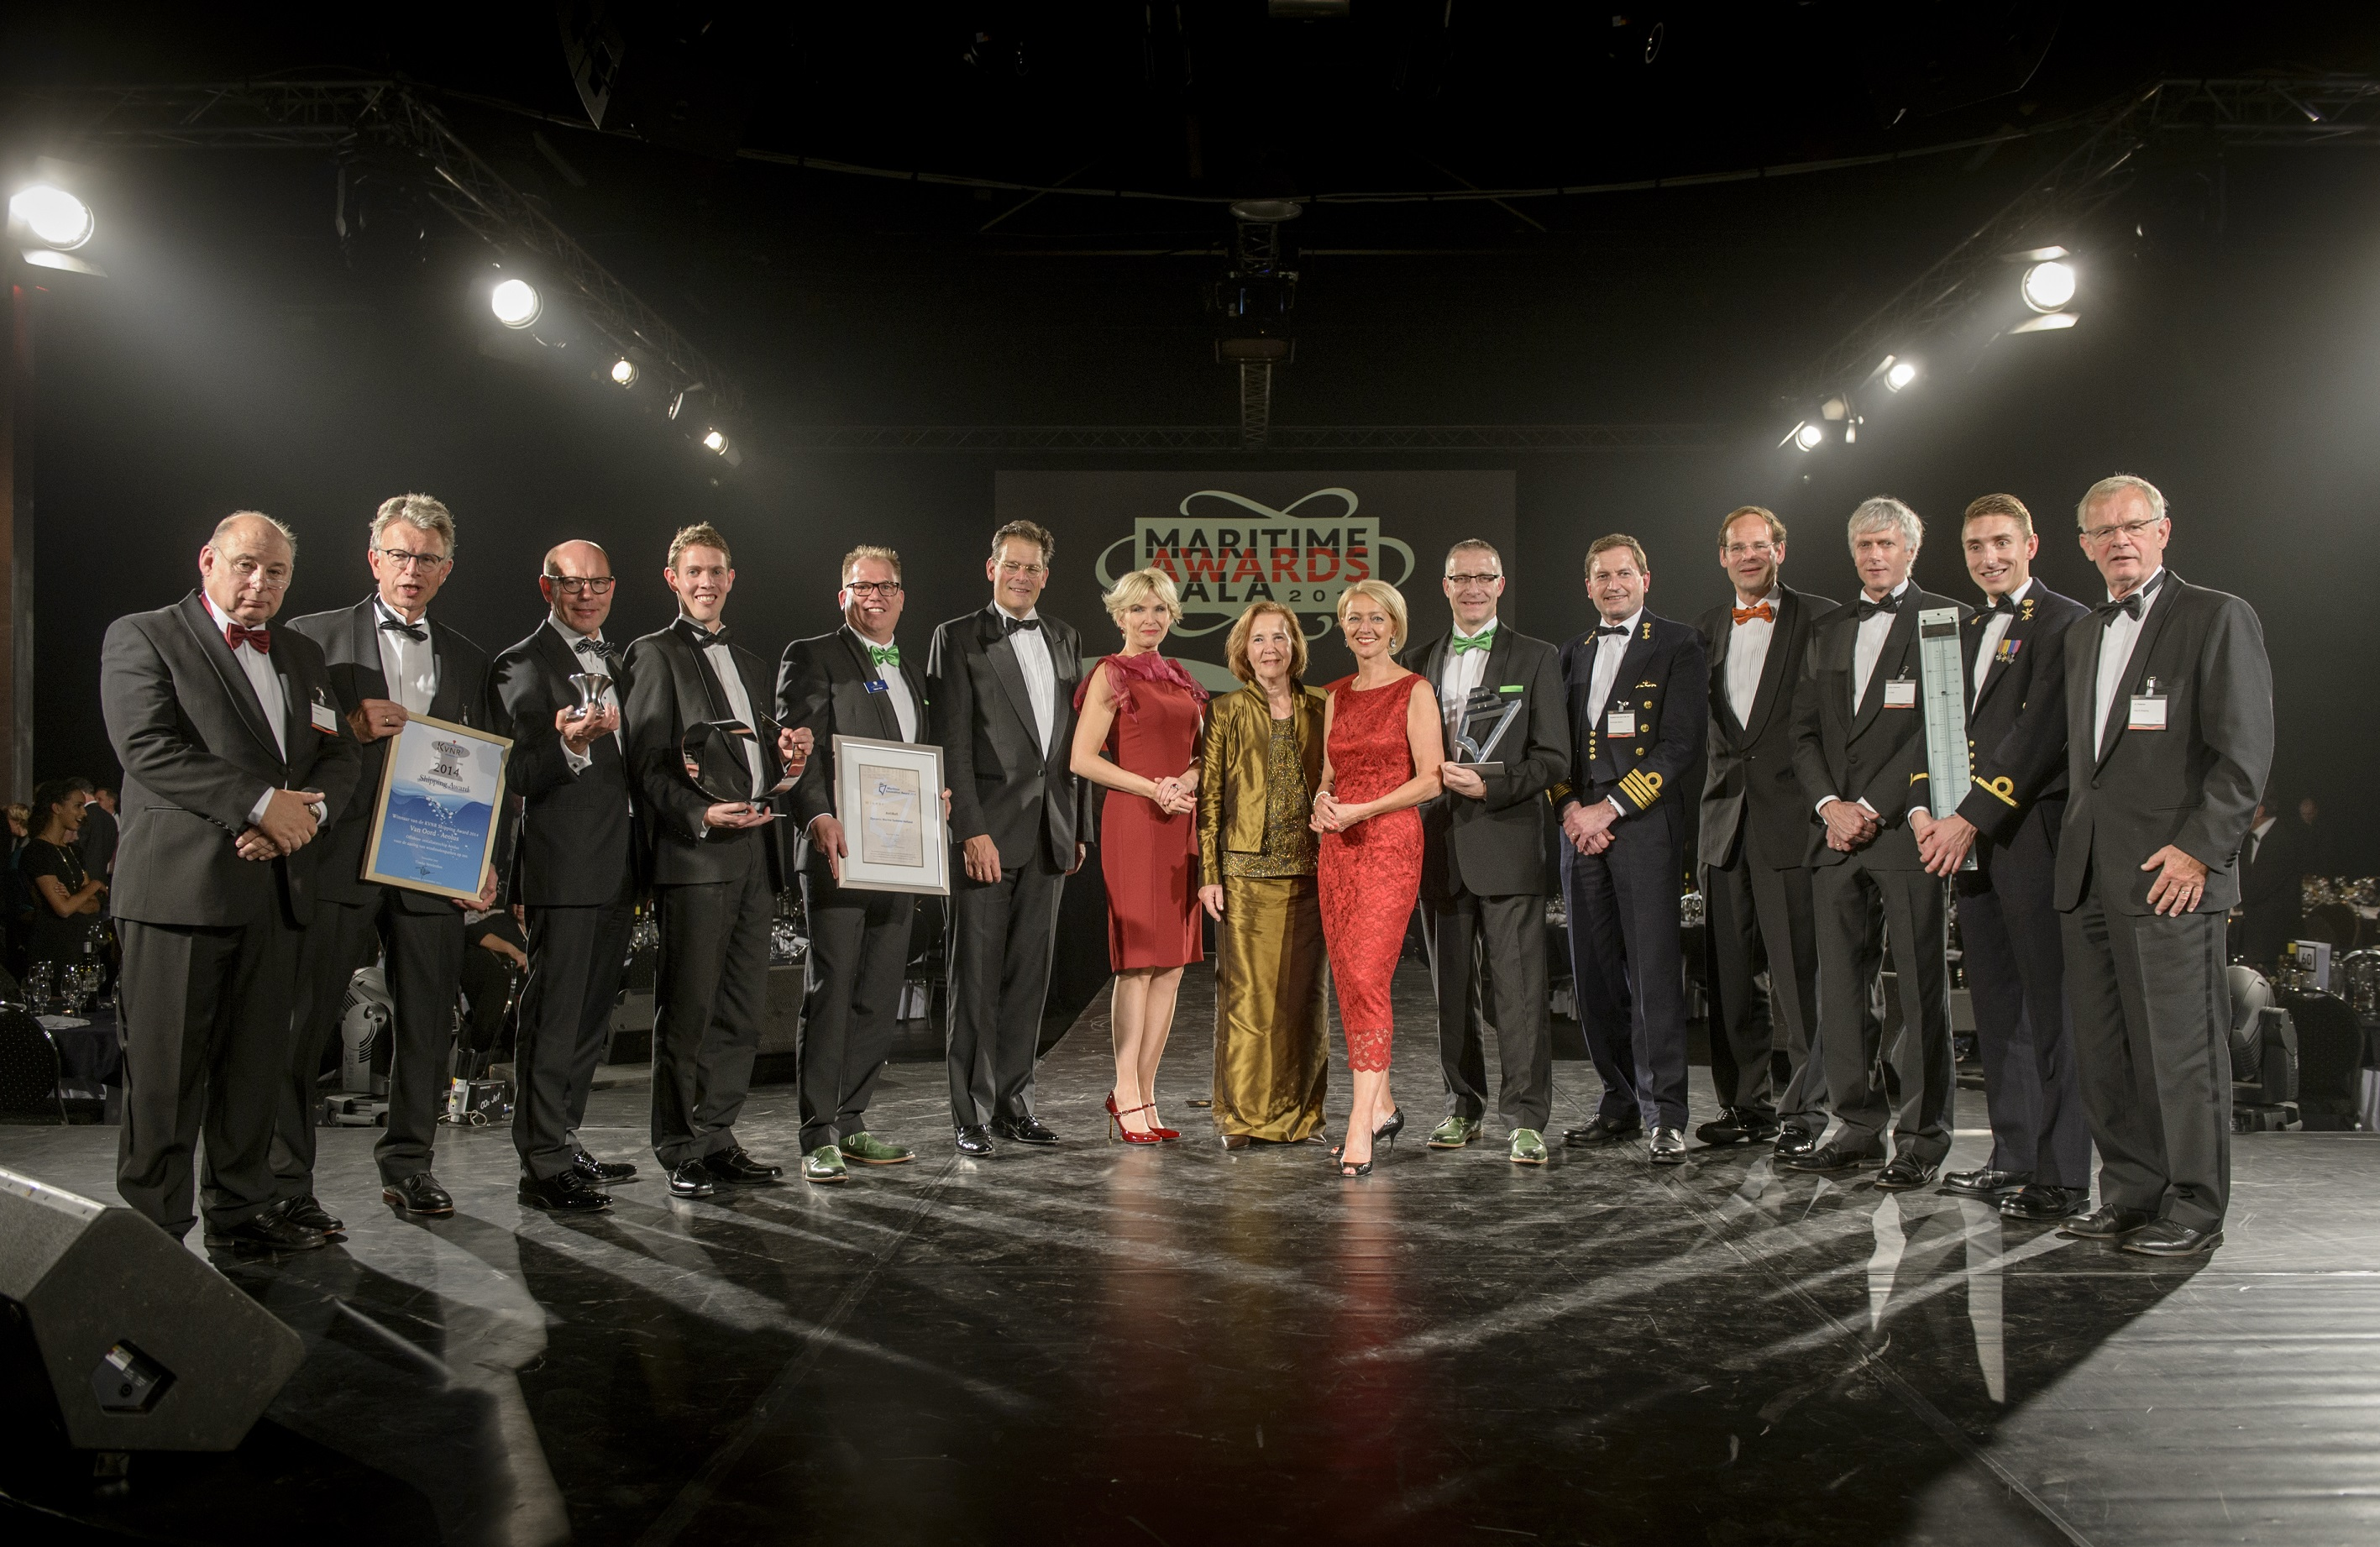 Maritiem Award Gala winners